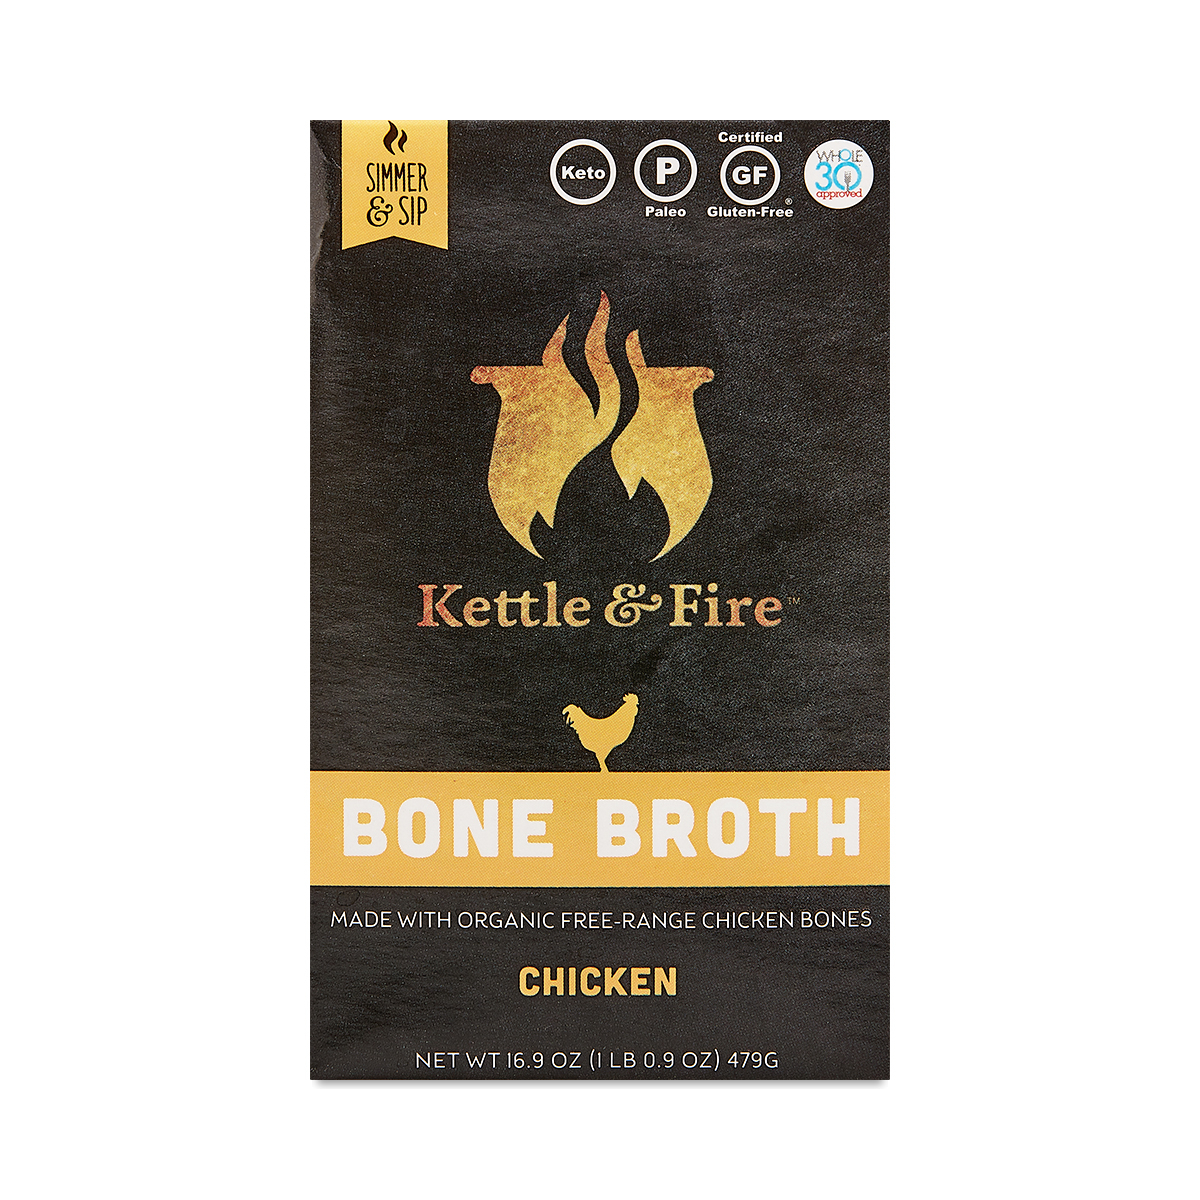 Kettle & Fire Chicken Bone Broth 16.9 oz carton